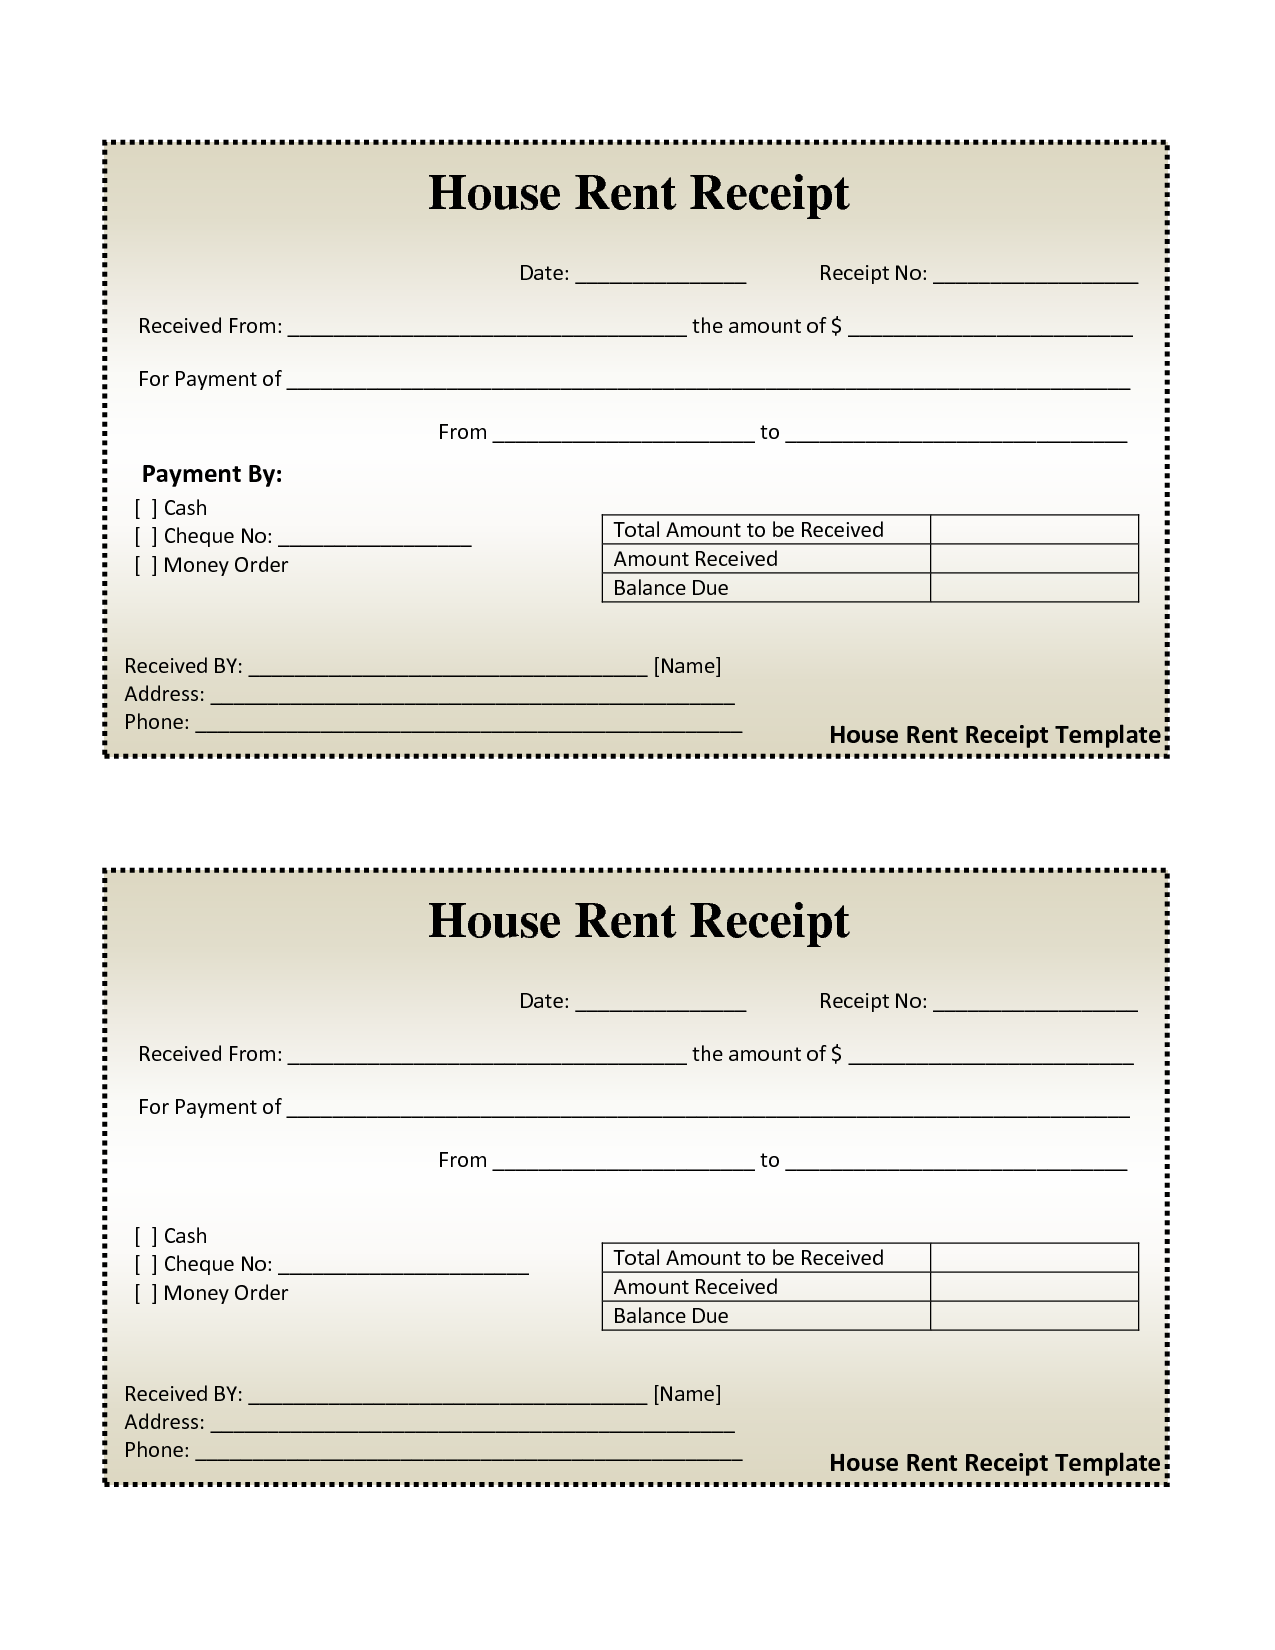 Free Rent Receipts Cool Free House Rental Invoice  House Rent Receipt Template  Doc  Rent .